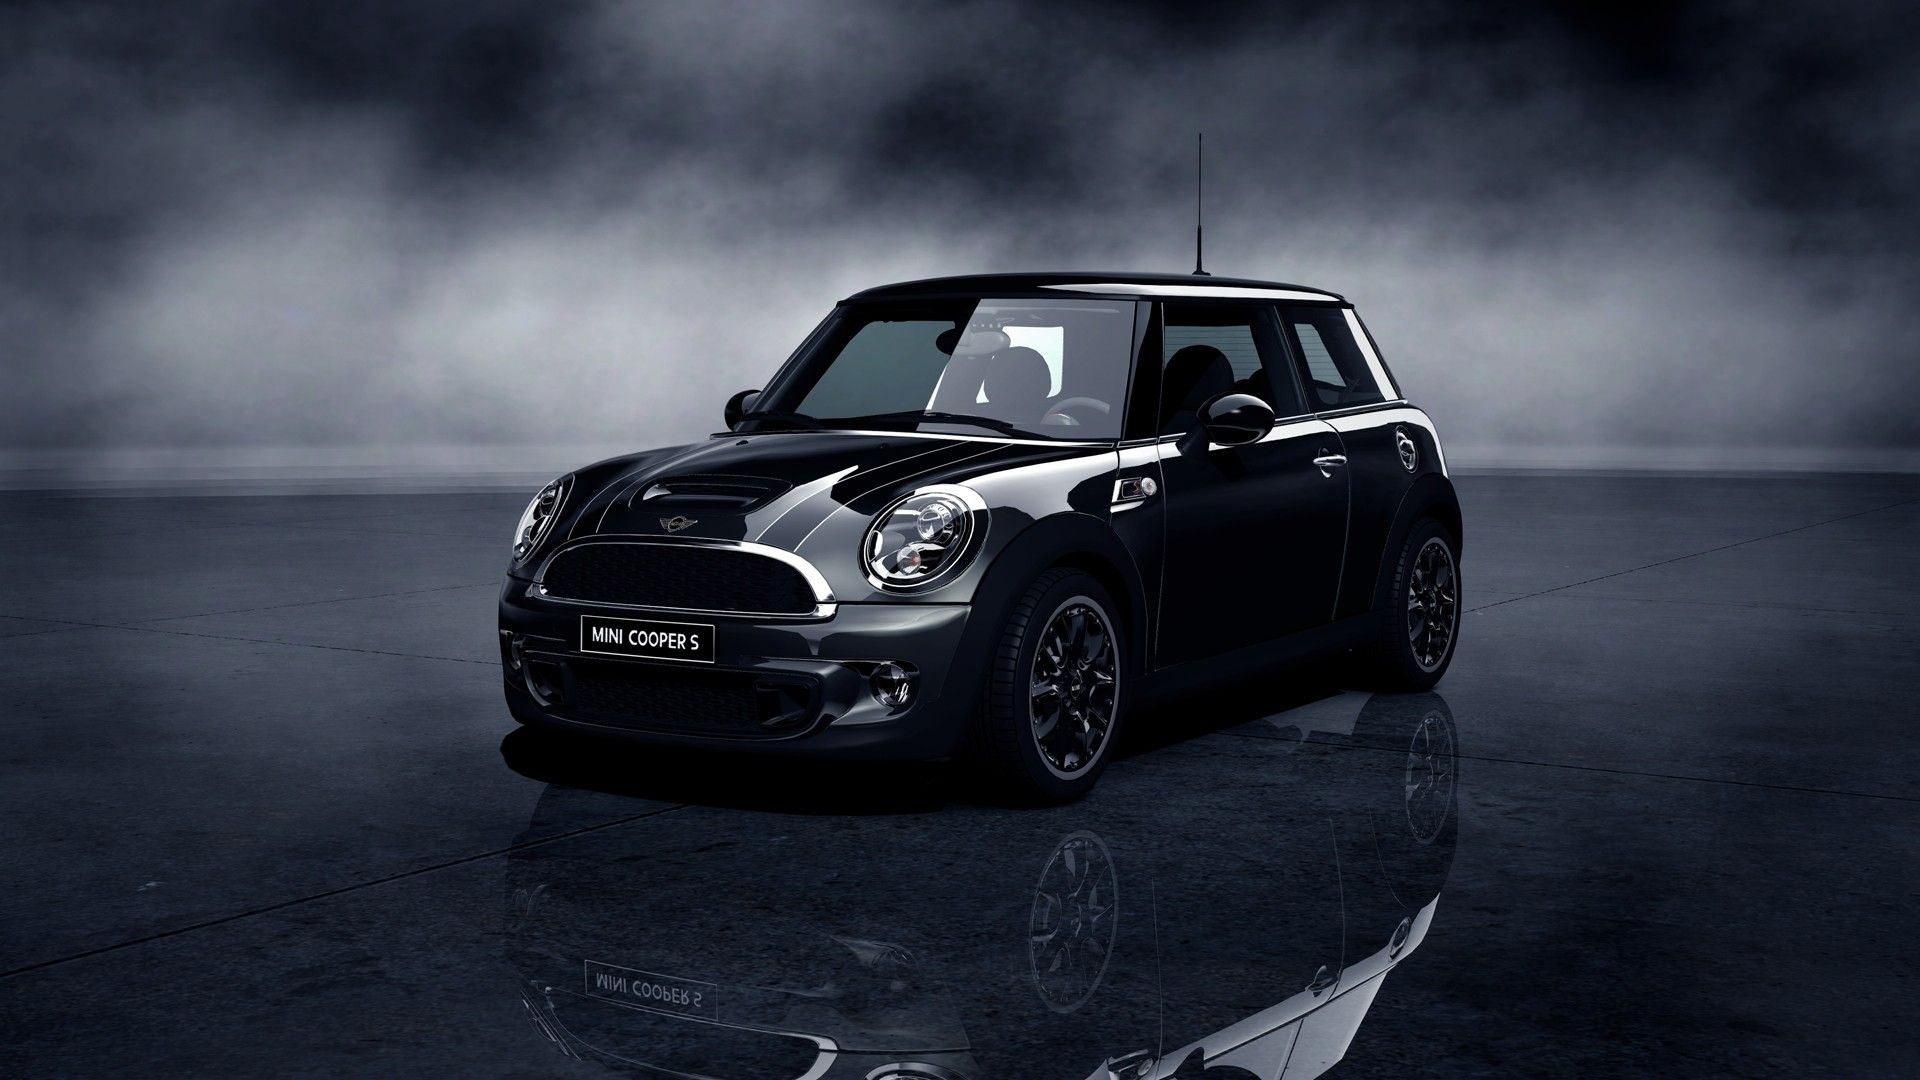 26+ mini cooper s wallpapers